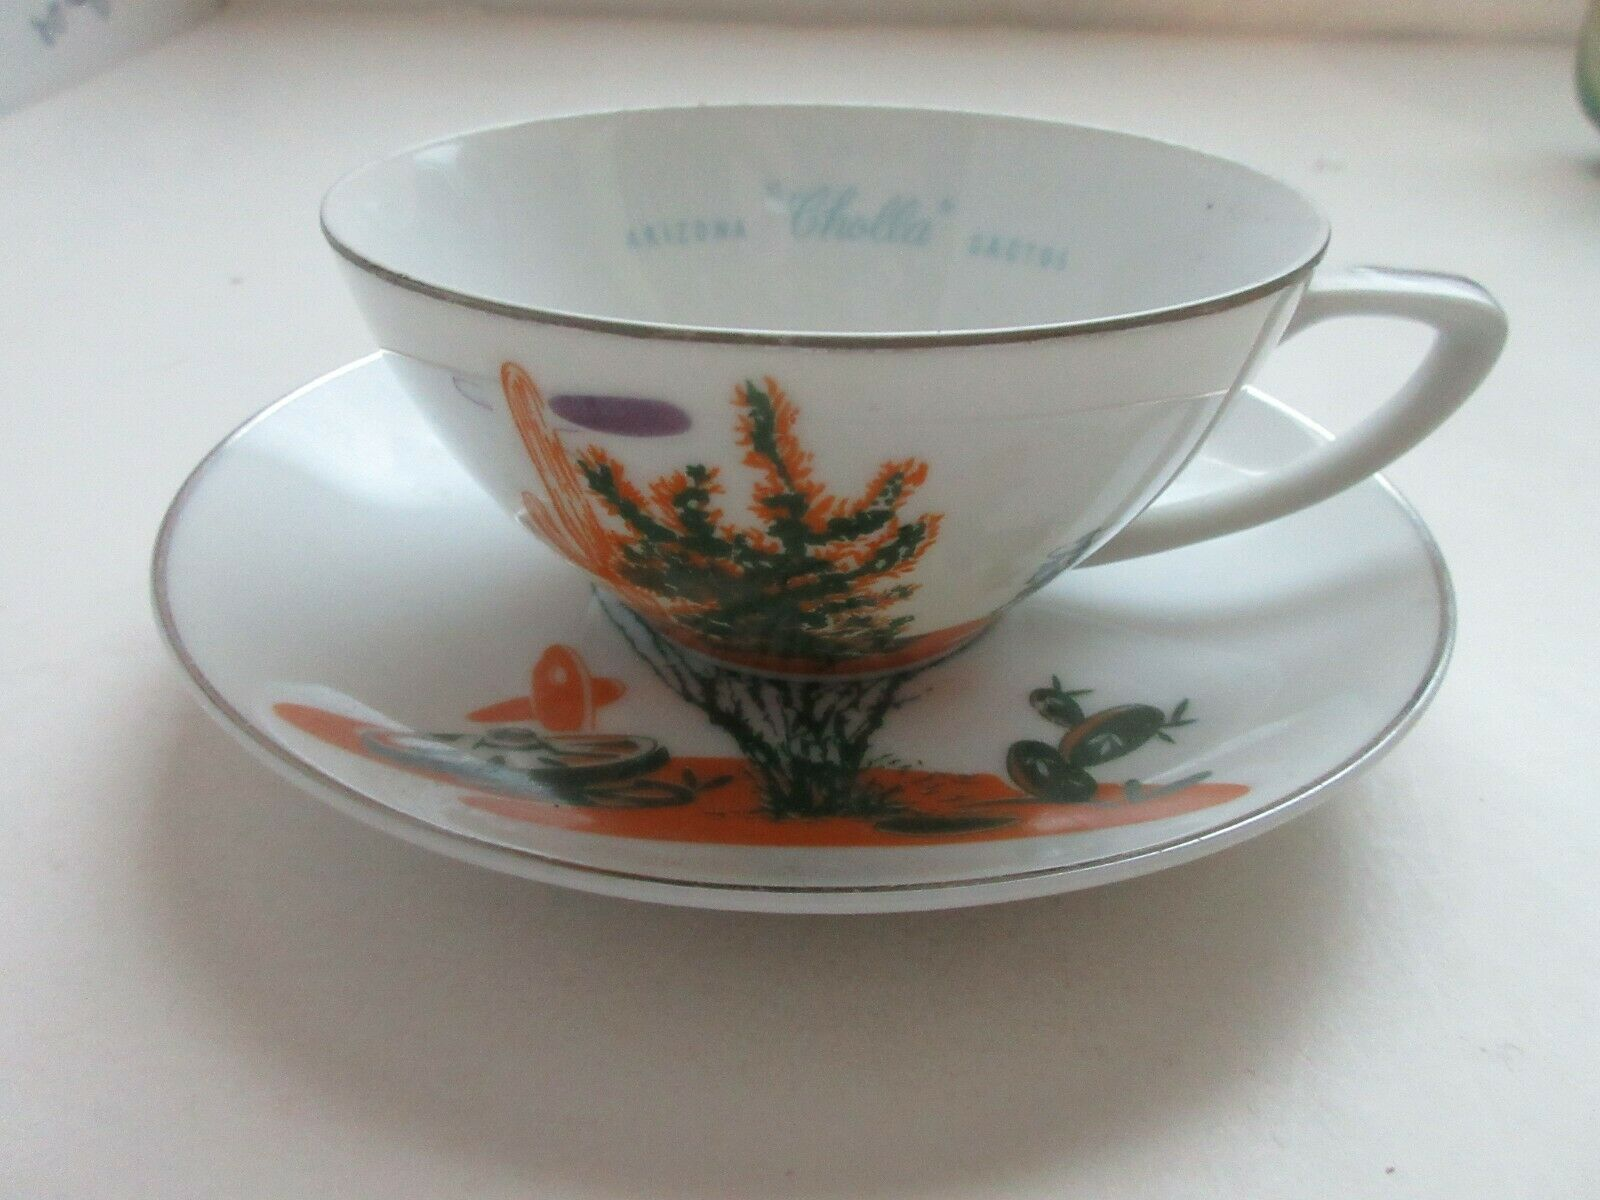 "Details about Vintage Blakely Fine China Arizona Cactus ""Ocotillo"" Cup & Saucer -Ex. Condition #arizonacactus Vintage Blakely Fine China Arizona Cactus ""Ocotillo"" Cup & Saucer -Ex. Condition 